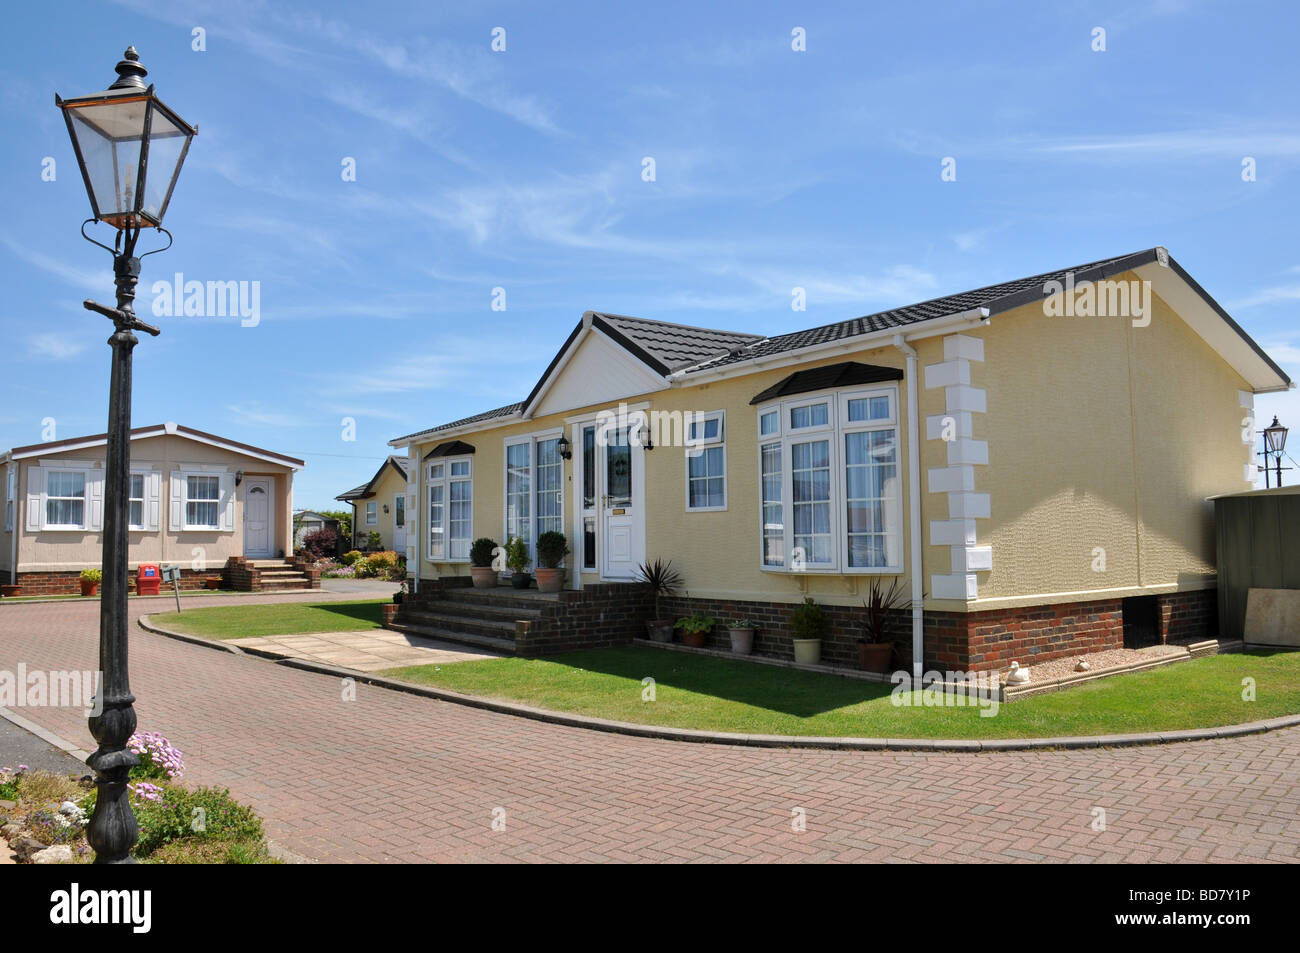 Residential Mobile Home Park In South East England Generally This Type Of Caravan Estate Is